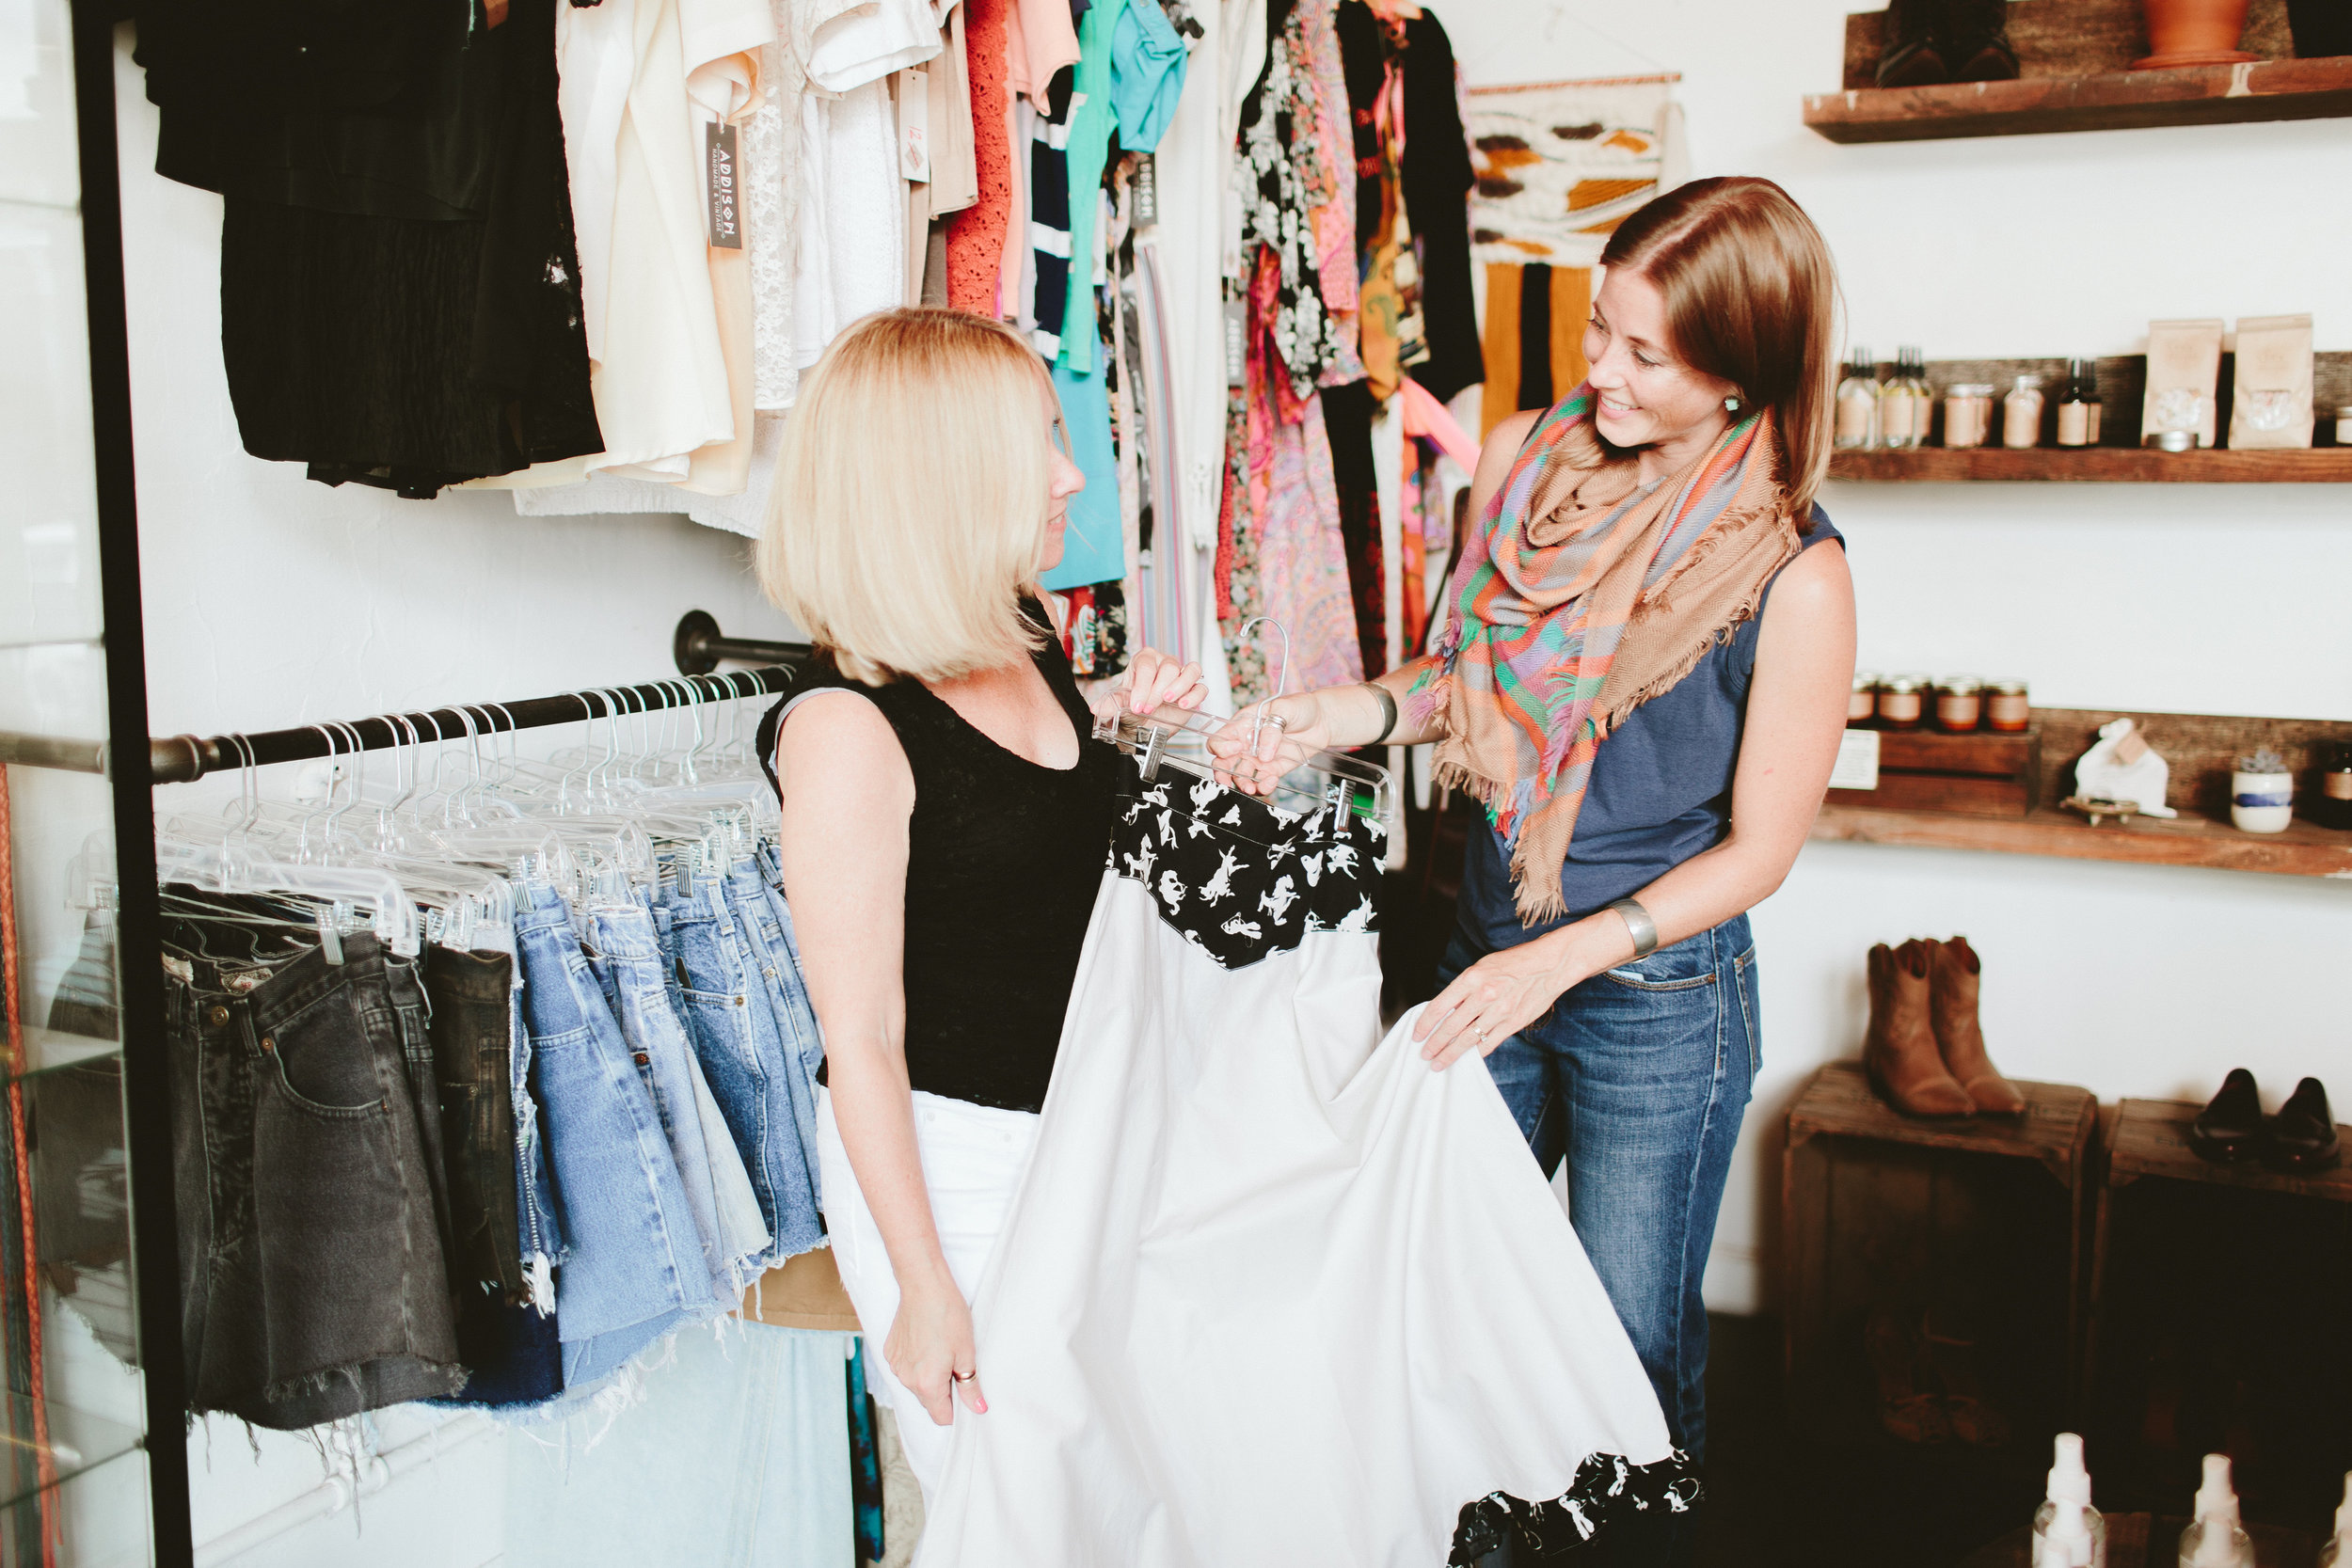 20 PERCENT - The average percent of a woman's wardrobe that goes unworn. That's one in every 4 pieces that never sees the light of day.